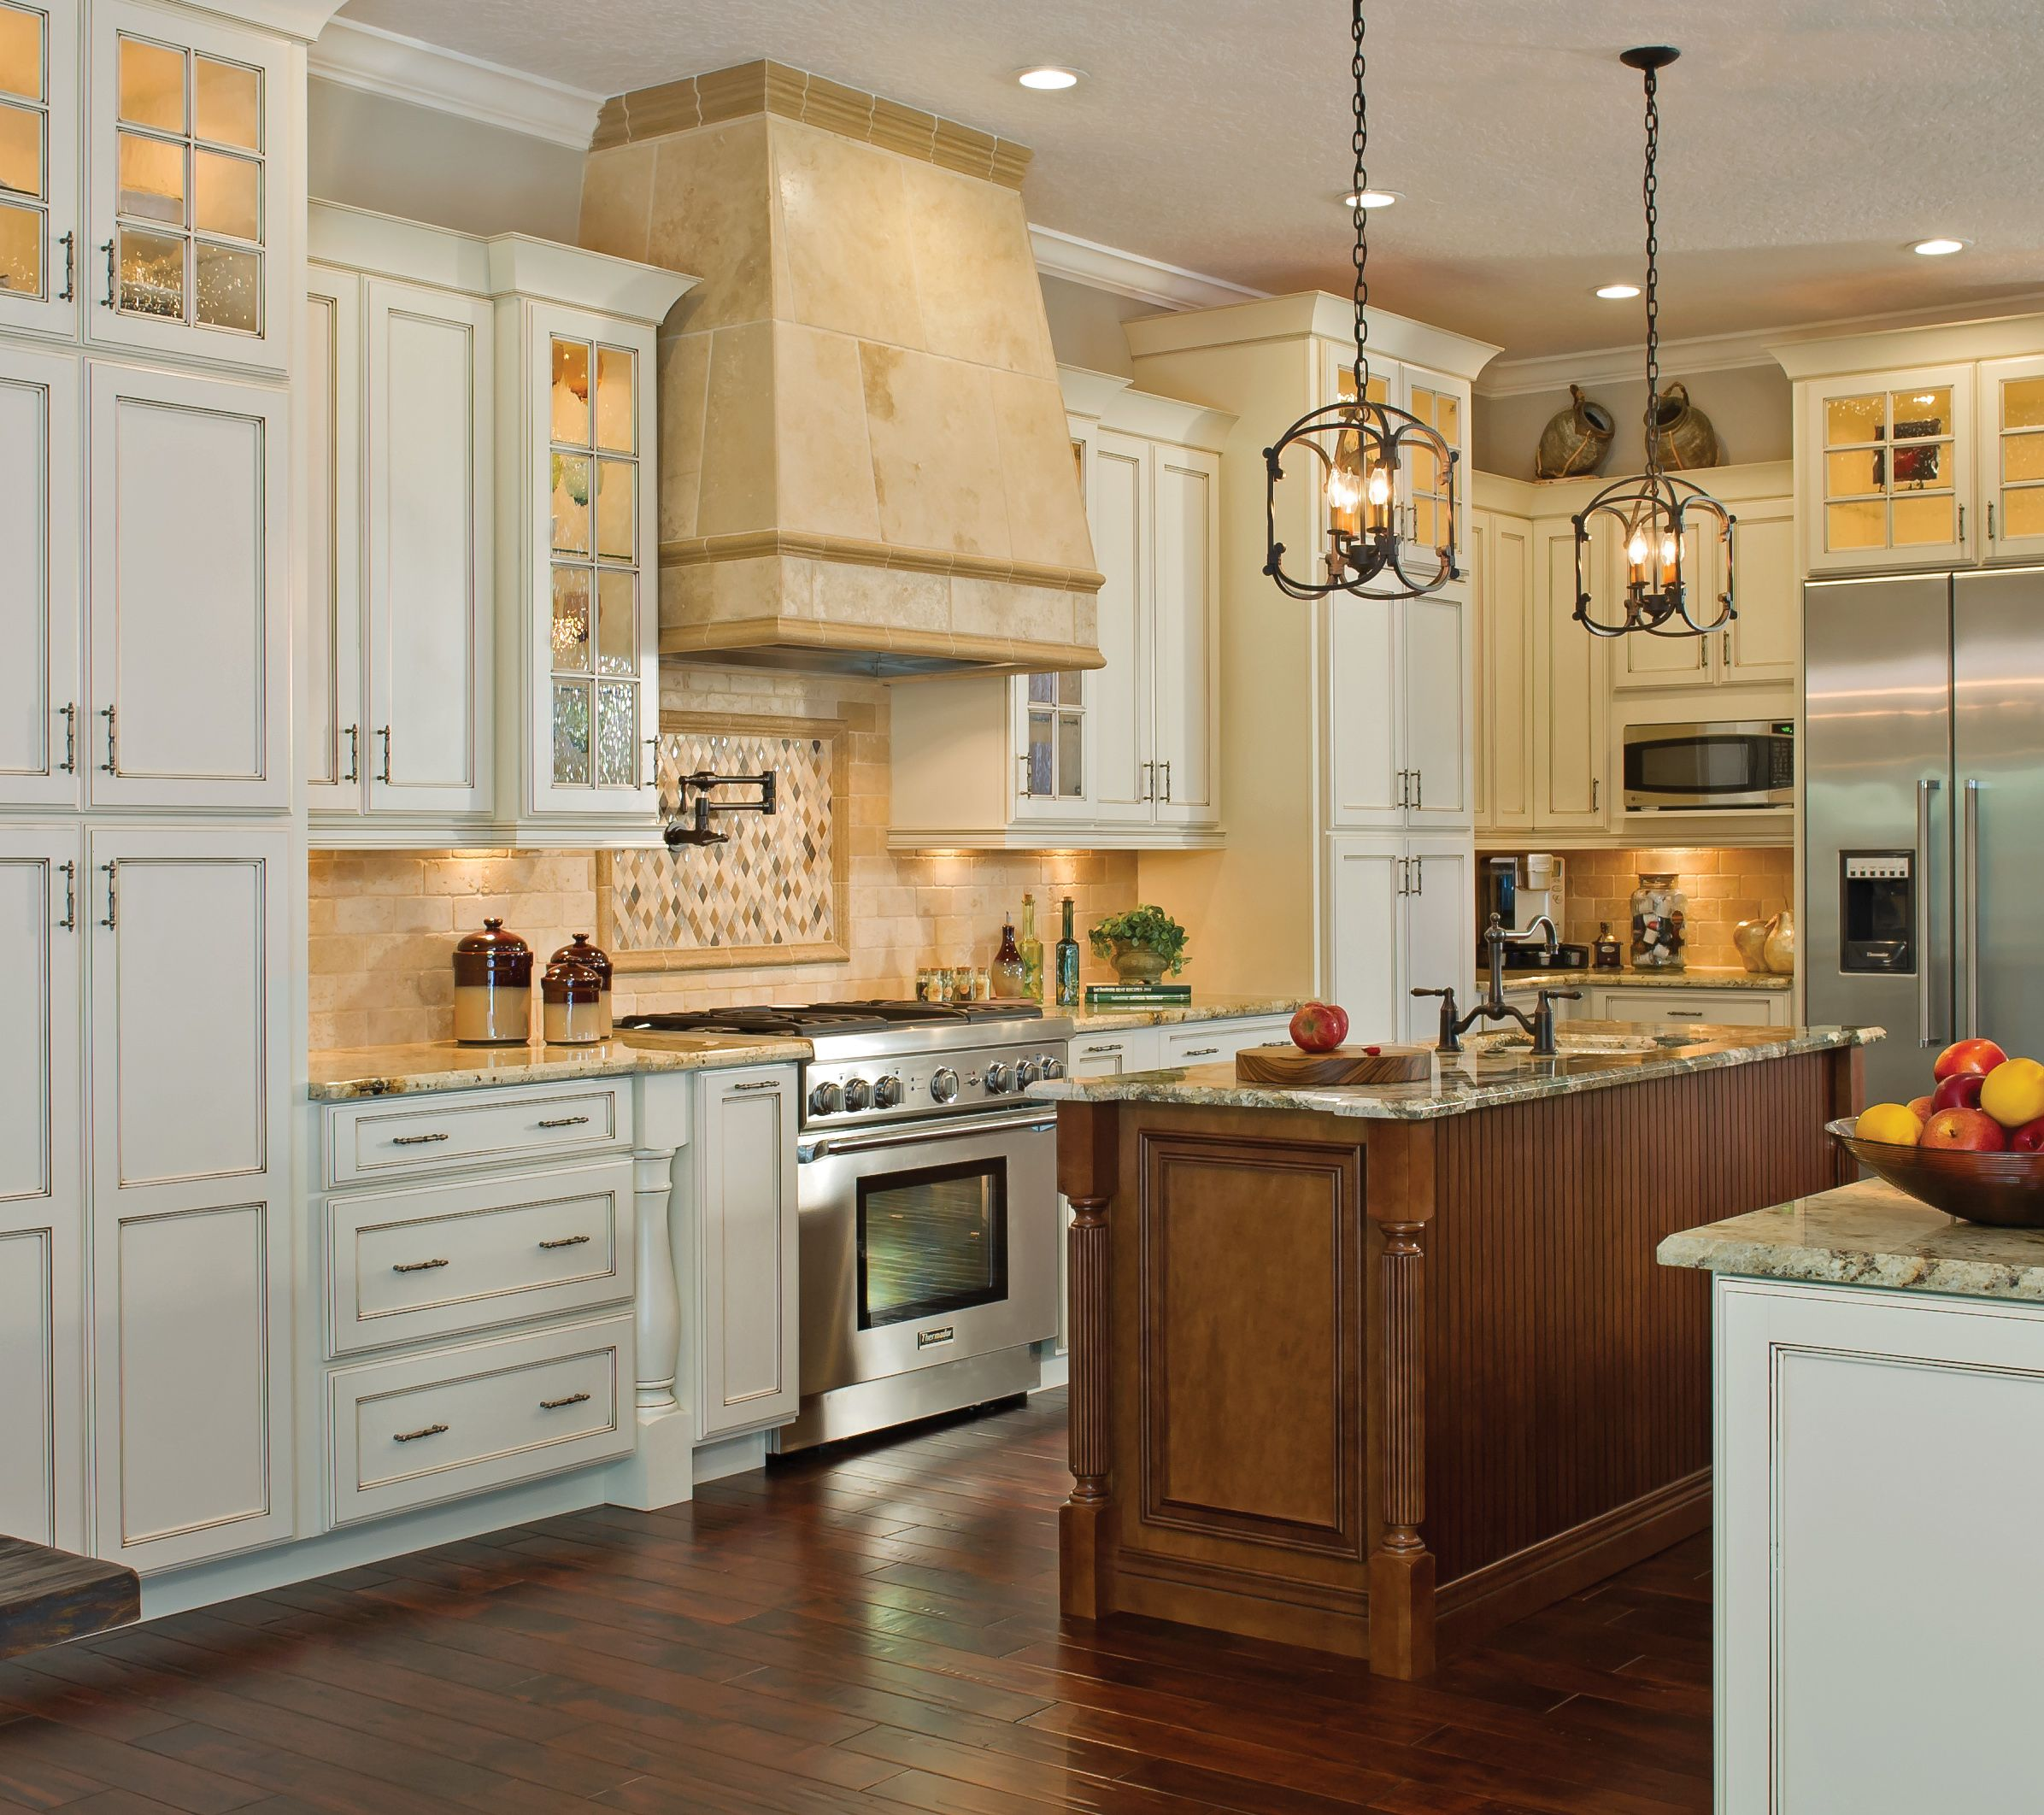 Superieur Traditional Kabinart Kitchen Shown In Hampton On Maple With An Aspen White  Finish And Coffee Glaze. Island In Sable With Coffee Glaze.